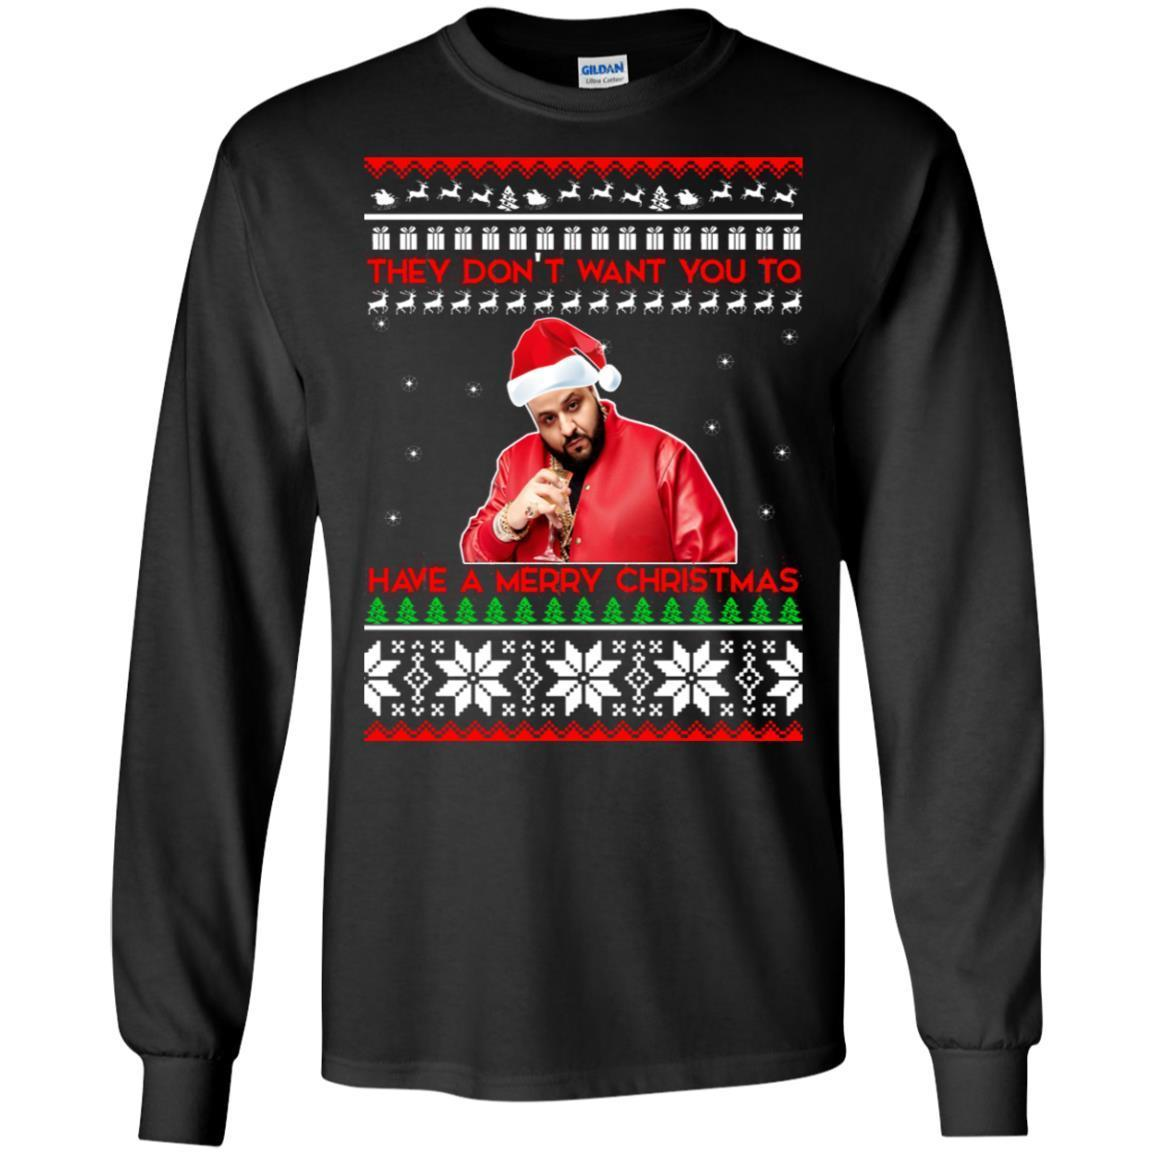 Shop From 1000 Unique Dj Khaled They Dont Want You To Have A Merry